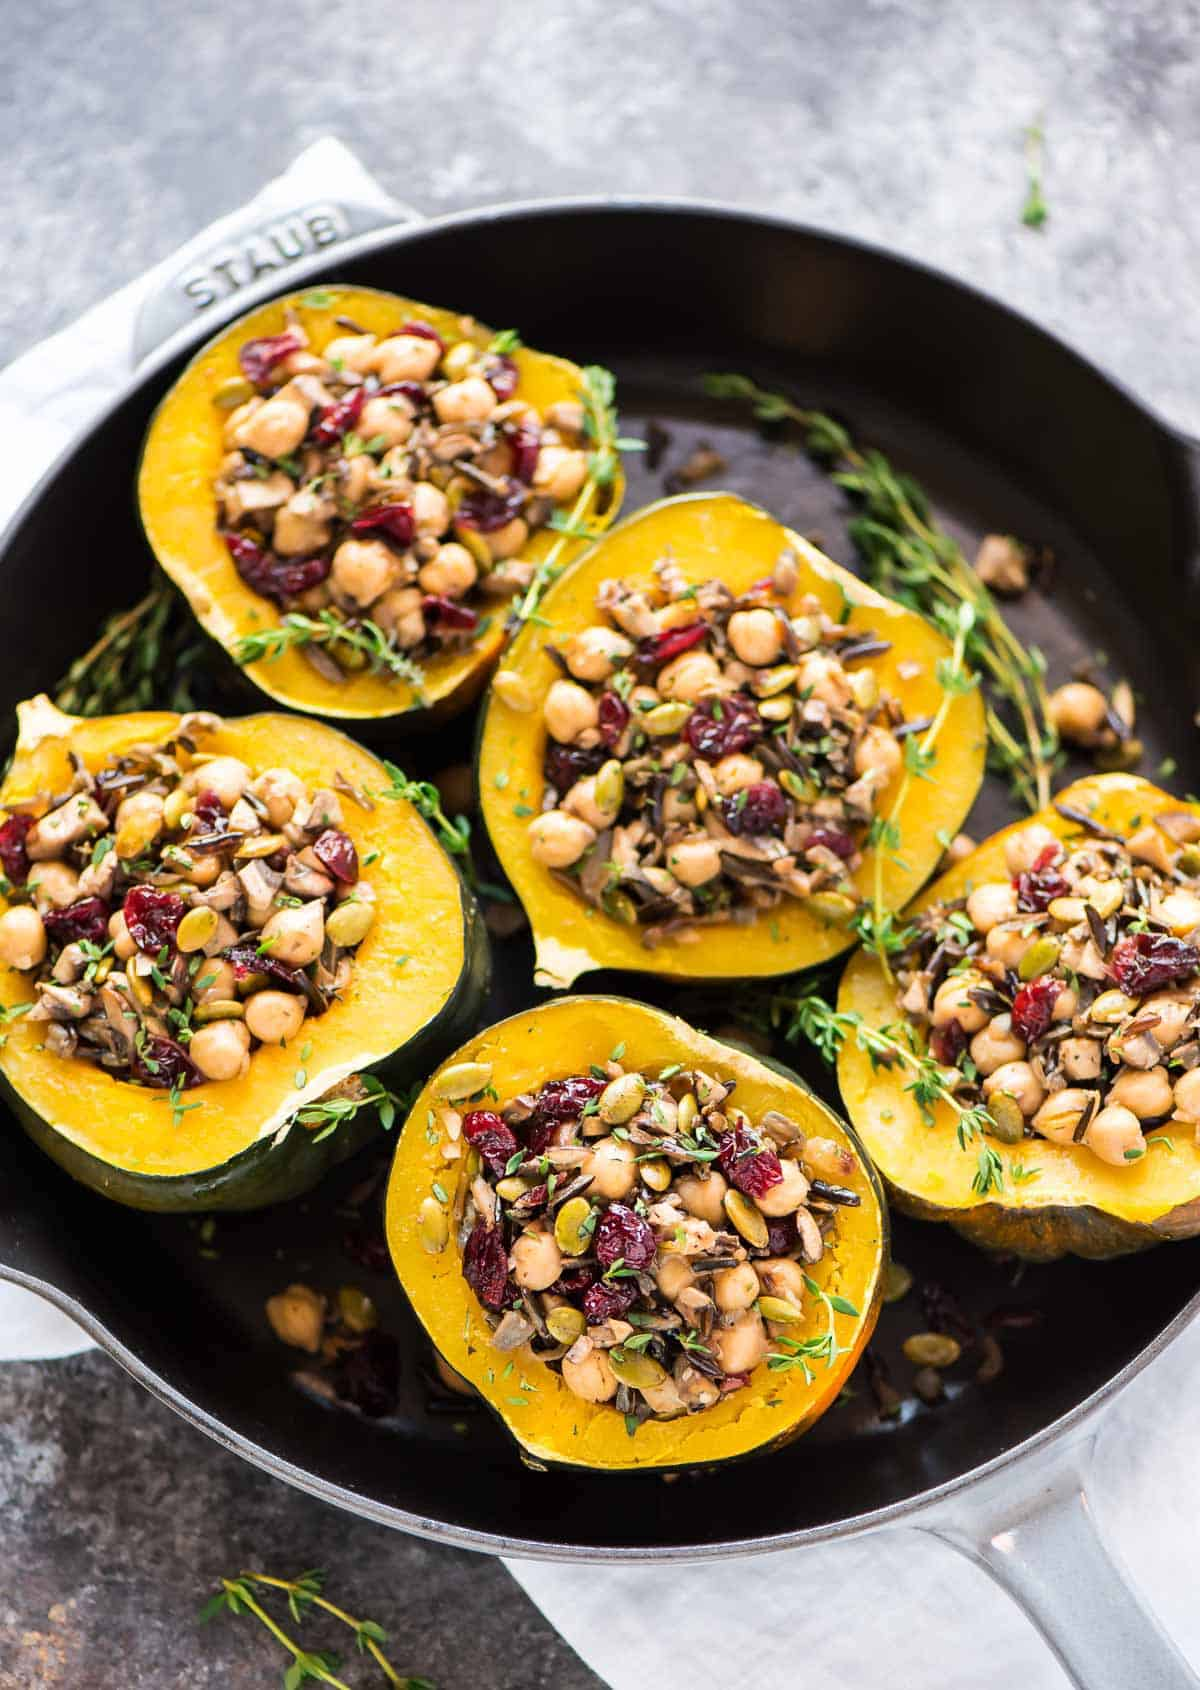 Delicious Stuffed Instant Pot Acorn Squash with Wild Rice, Cranberry, Mushroom, and Chickpeas arranges in a cast iron skillet